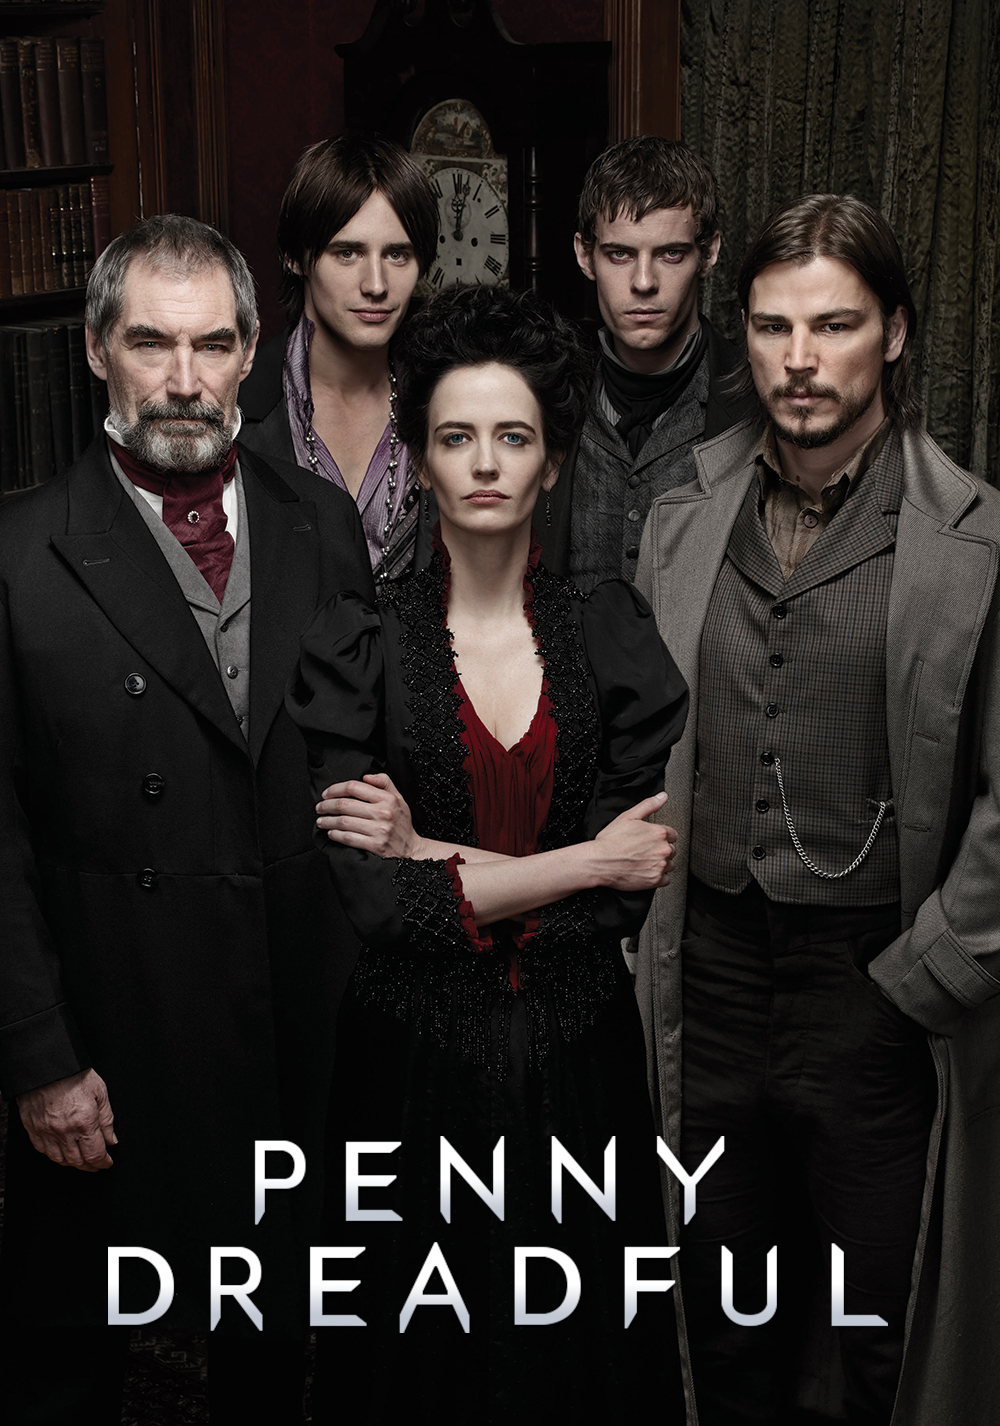 Penny Dreadful Season 1 EP.1-EP.8 (จบ) ซับไทย